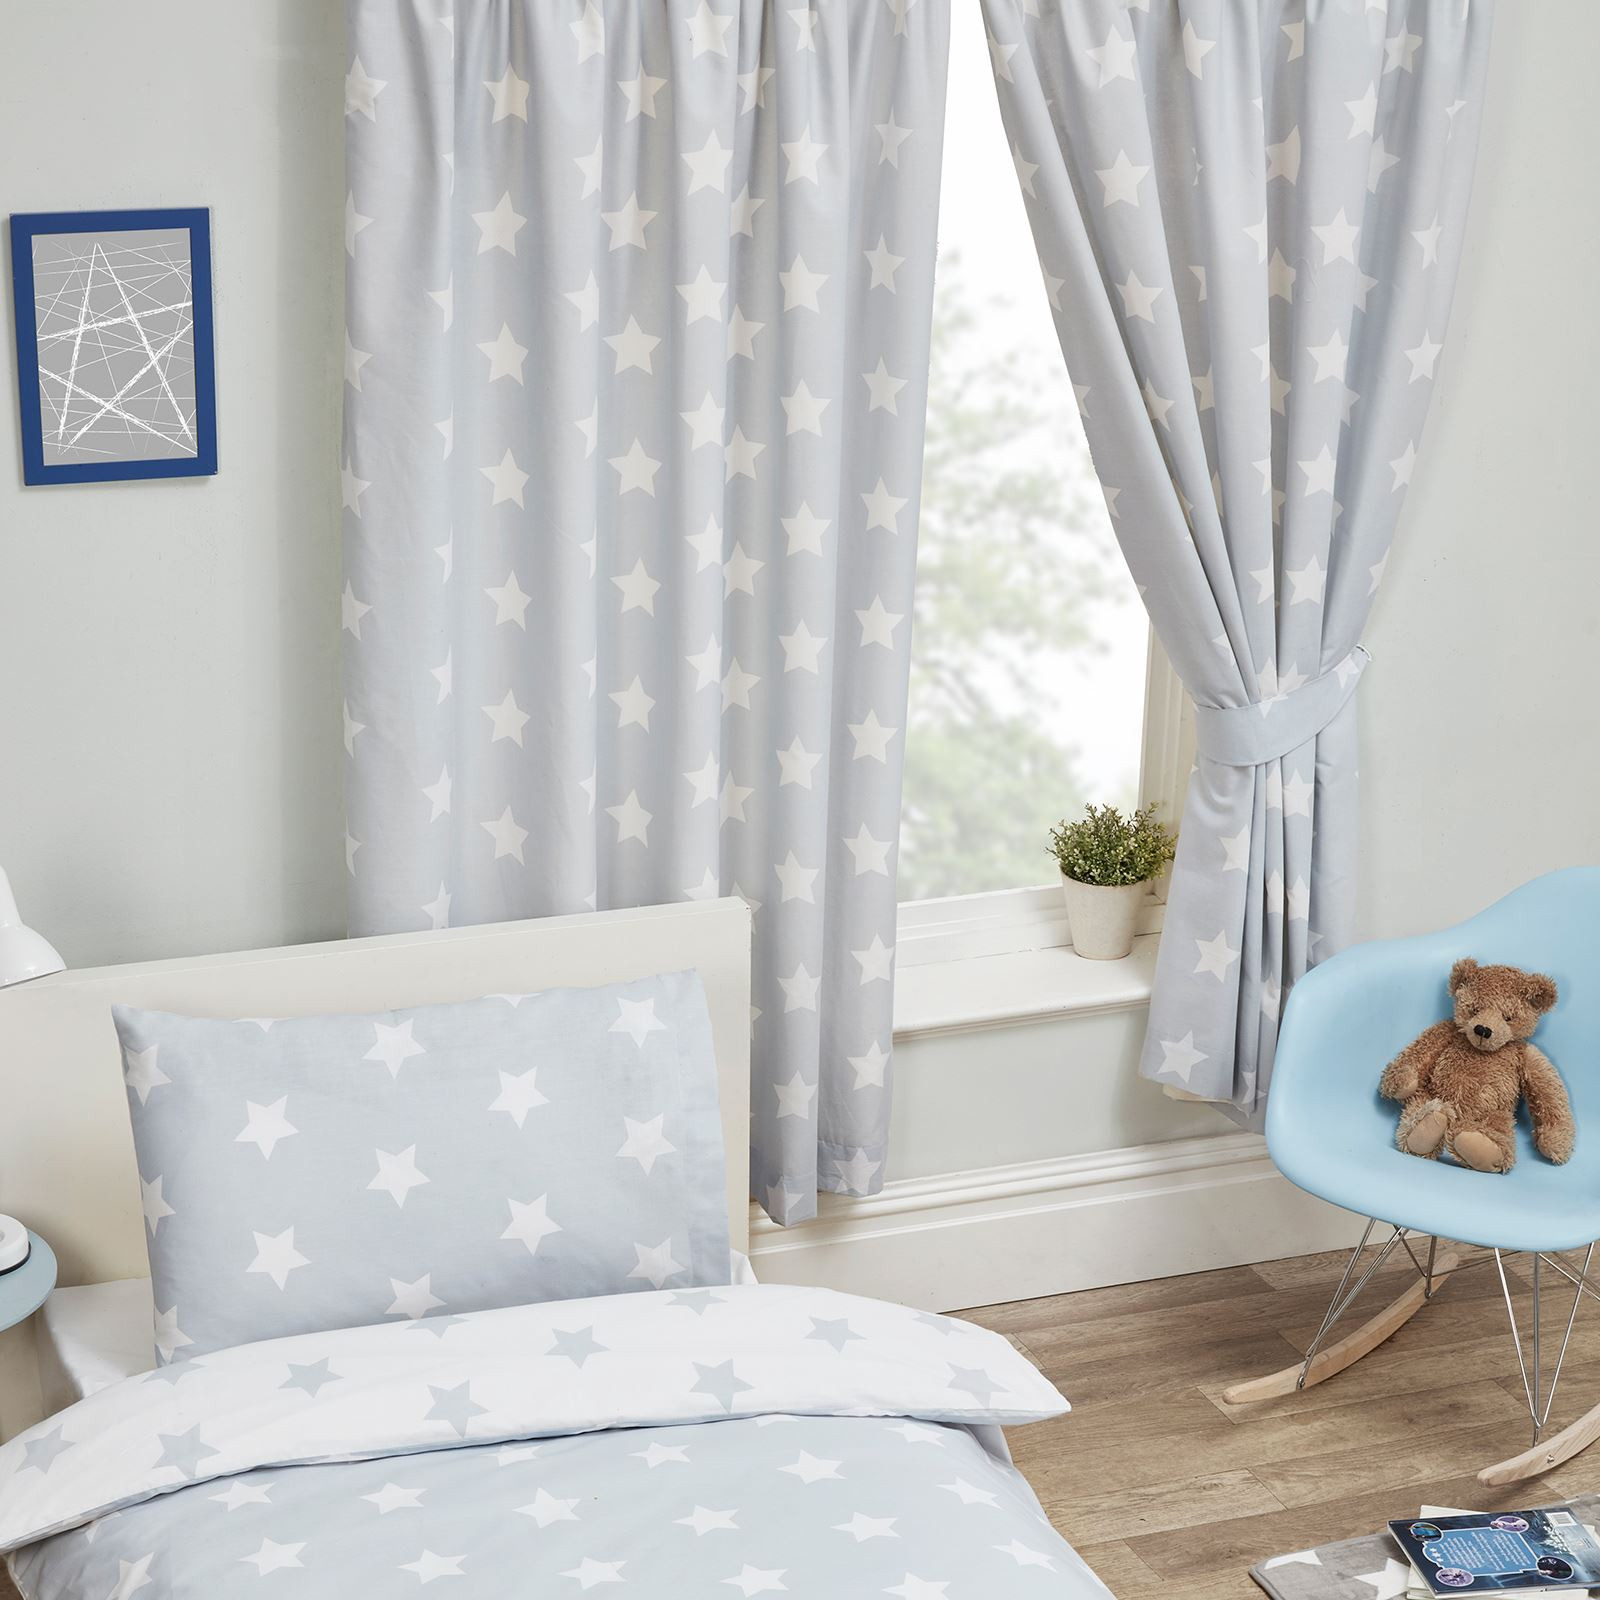 """Best ideas about Kid Bedroom Curtain . Save or Pin BOYS KIDS GENERIC BEDROOM CURTAINS 54"""" & 72"""" ARMY Now."""